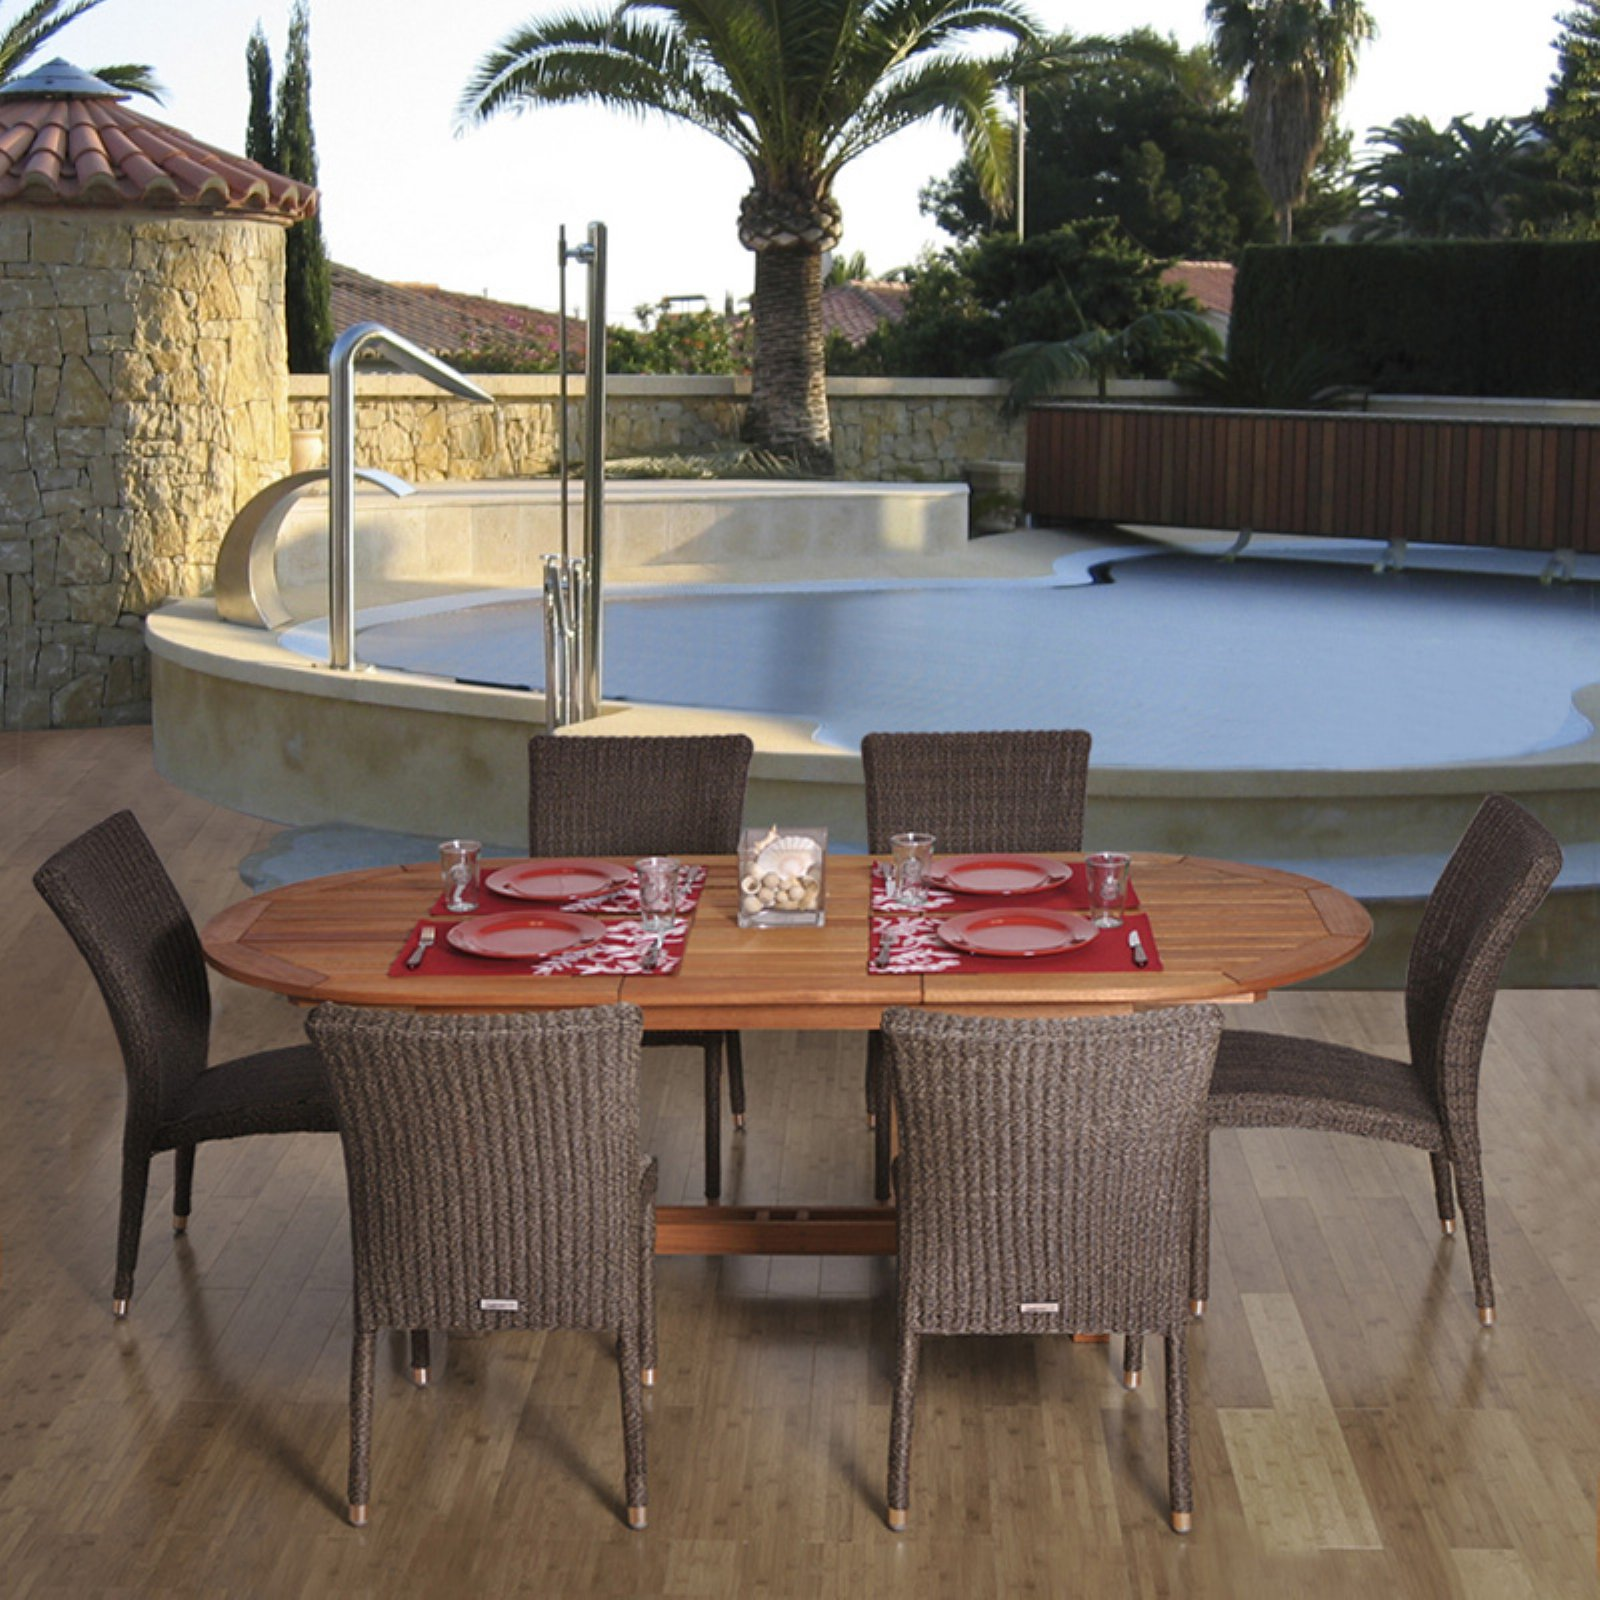 Amazonia Lemans Oval Eucalyptus And Wicker Dining Set - Seats 6